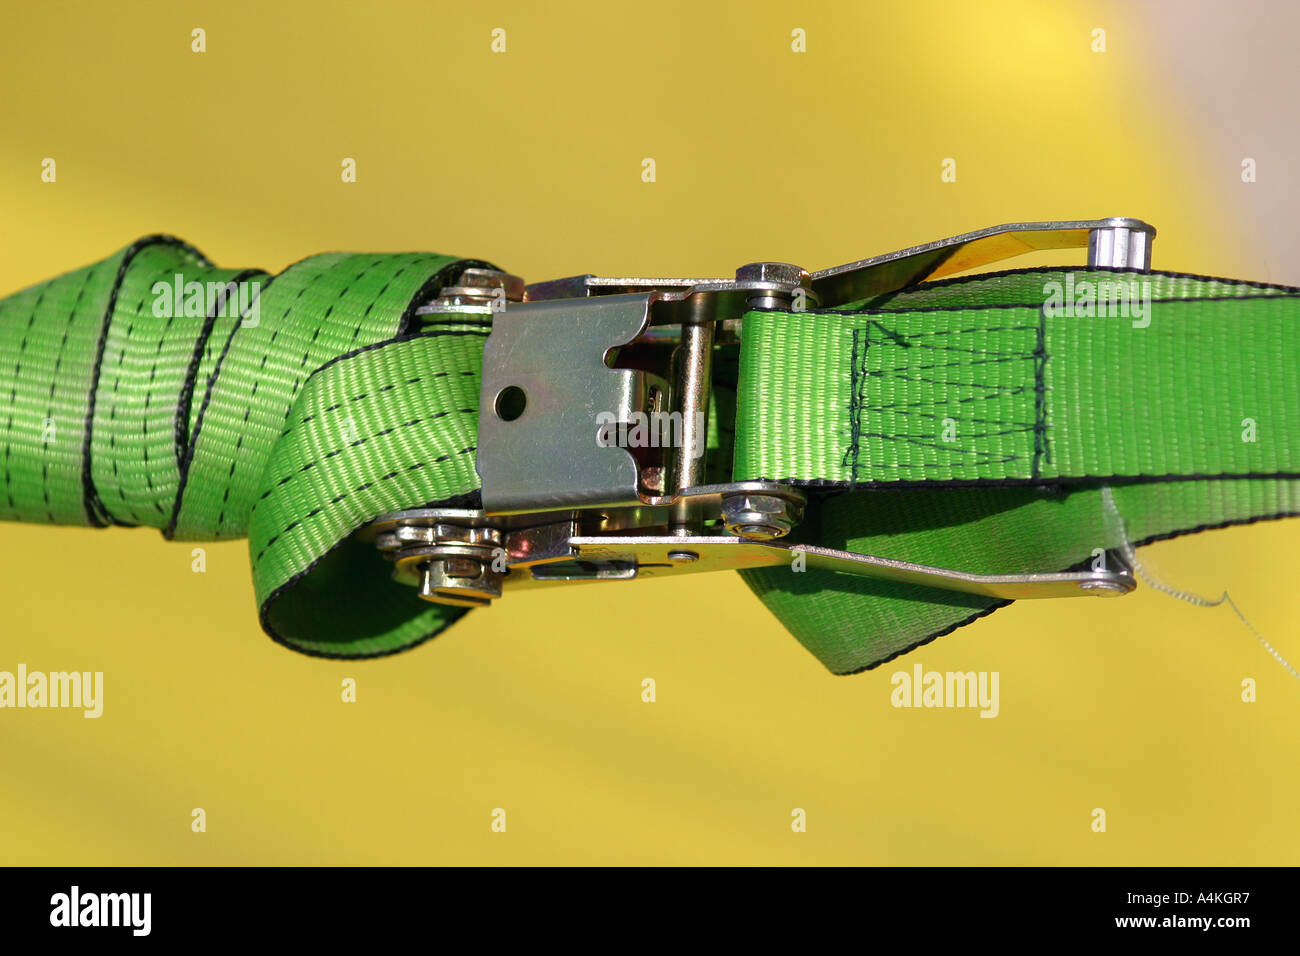 Buckled strap - Stock Image